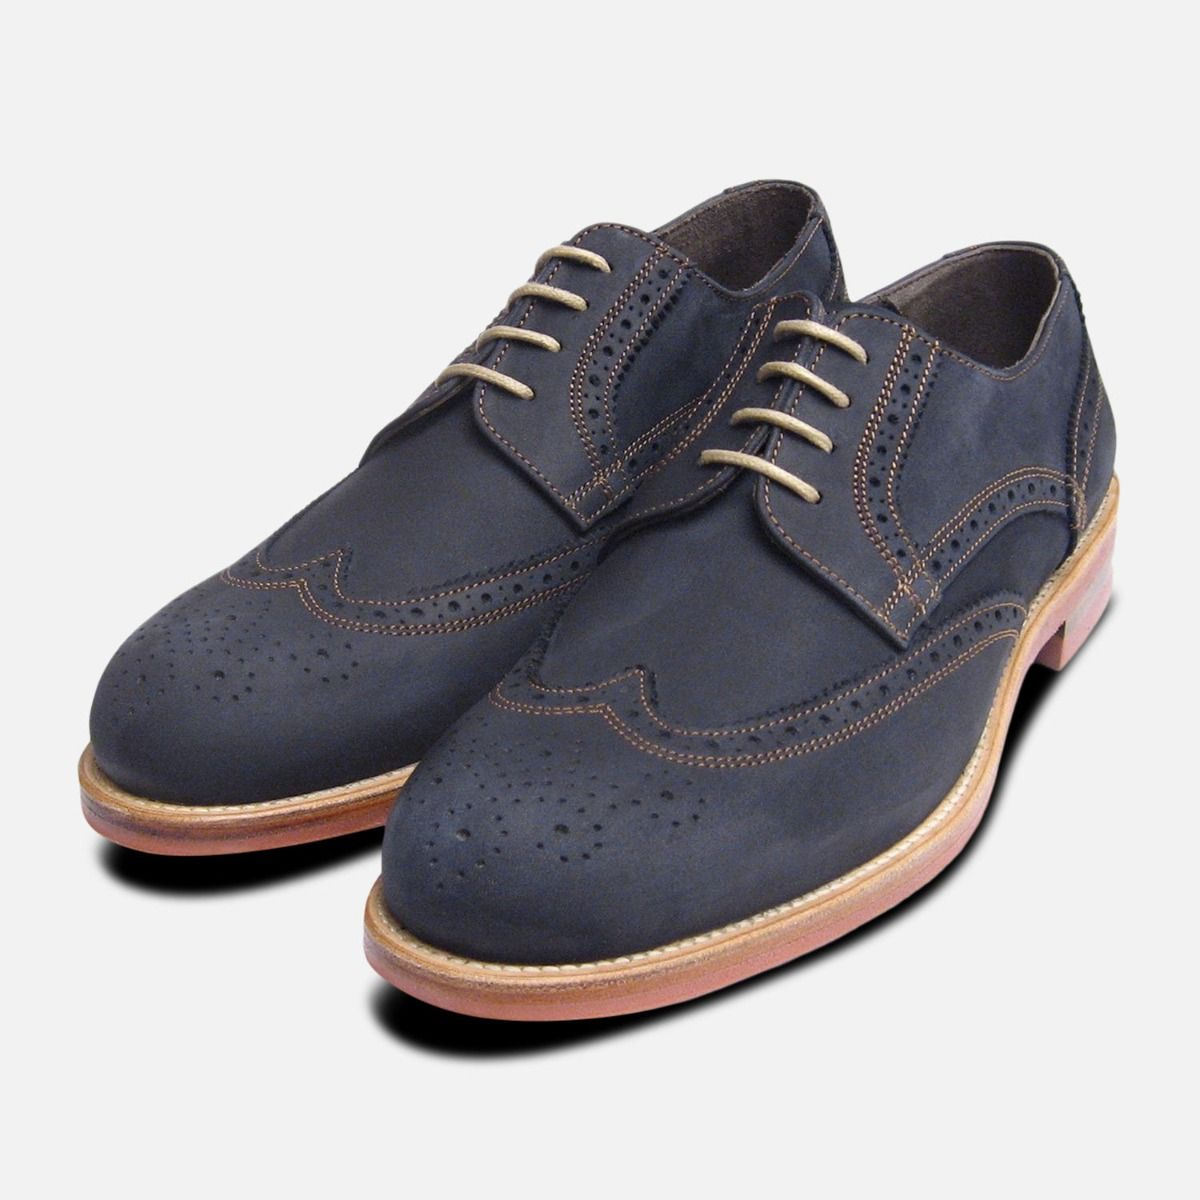 645a5a684ce9 Navy Blue Nubuck Mens Lace Up Brogues by John White Shoes